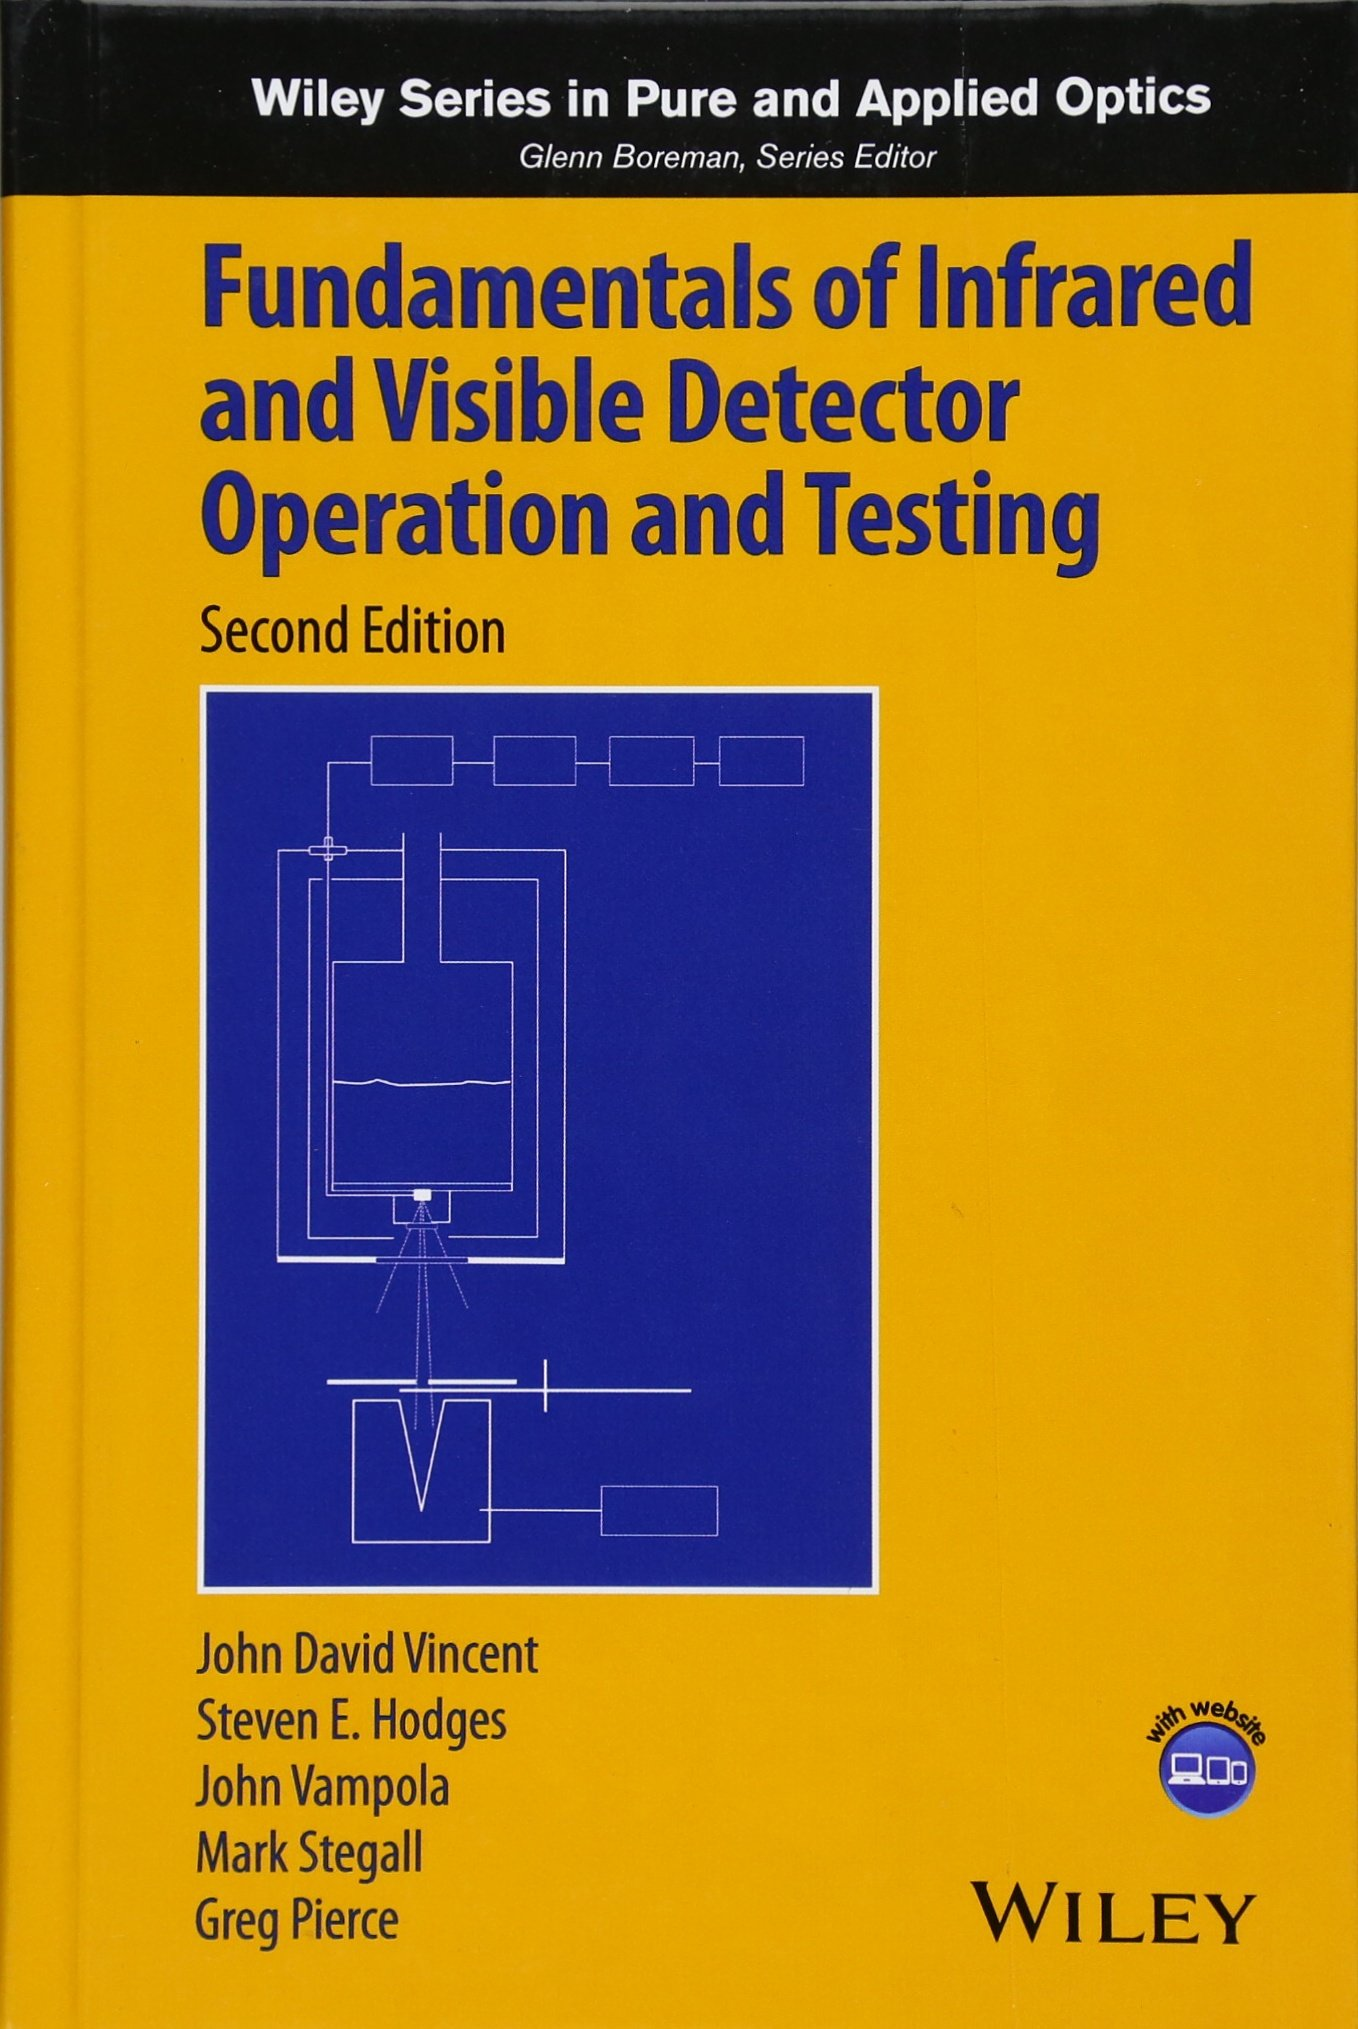 Fundamentals of Infrared and Visible Detector Operation and Testing (Wiley Series in Pure and Applied Optics) (Inglés) Tapa dura – 18 dic 2015